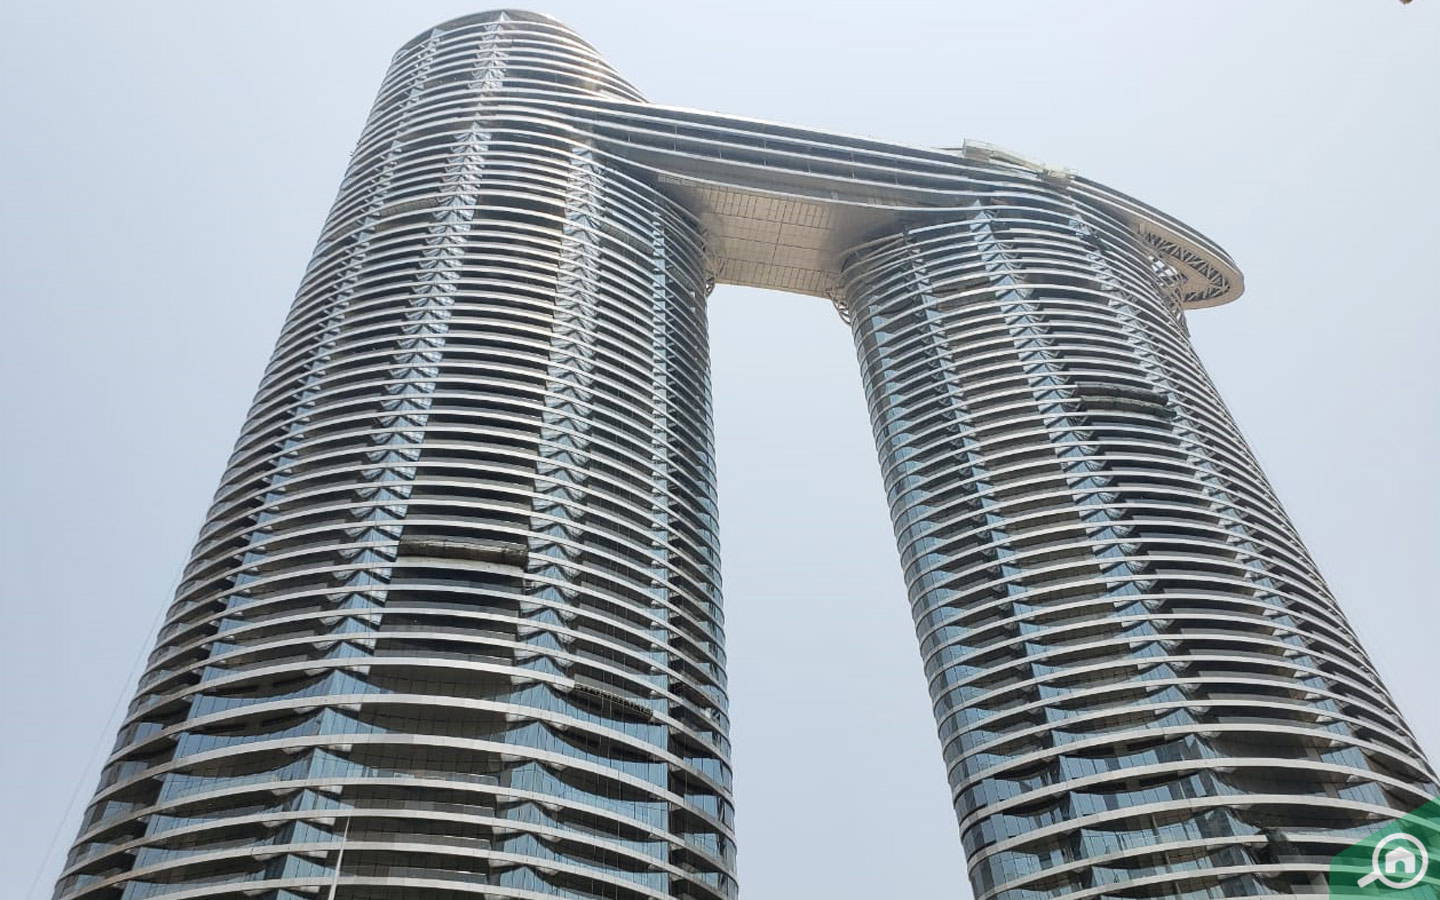 The Address Sky View Towers